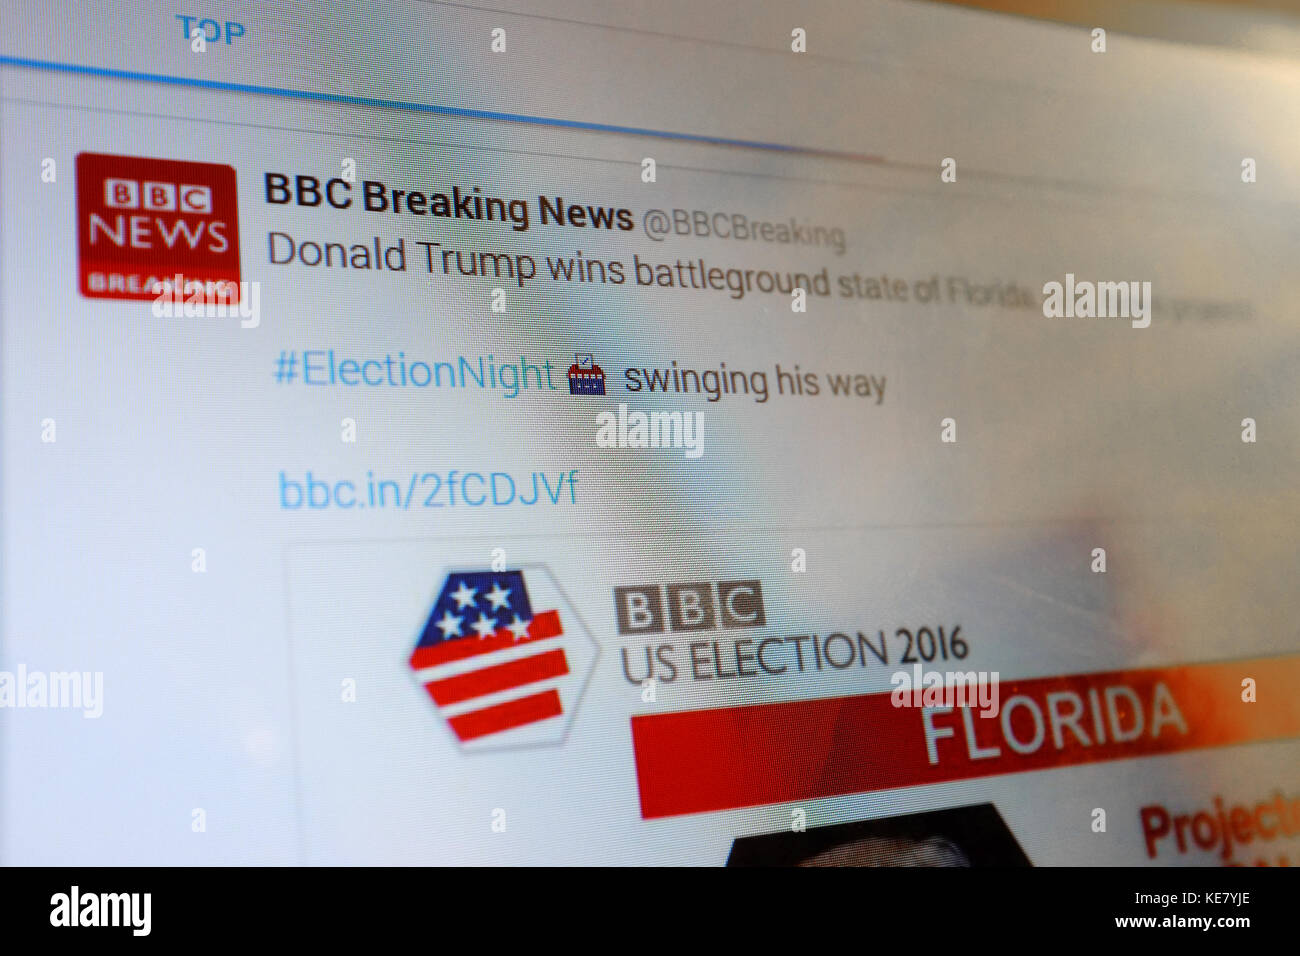 A BBC News Twitter page viewed on a tablet - Stock Image